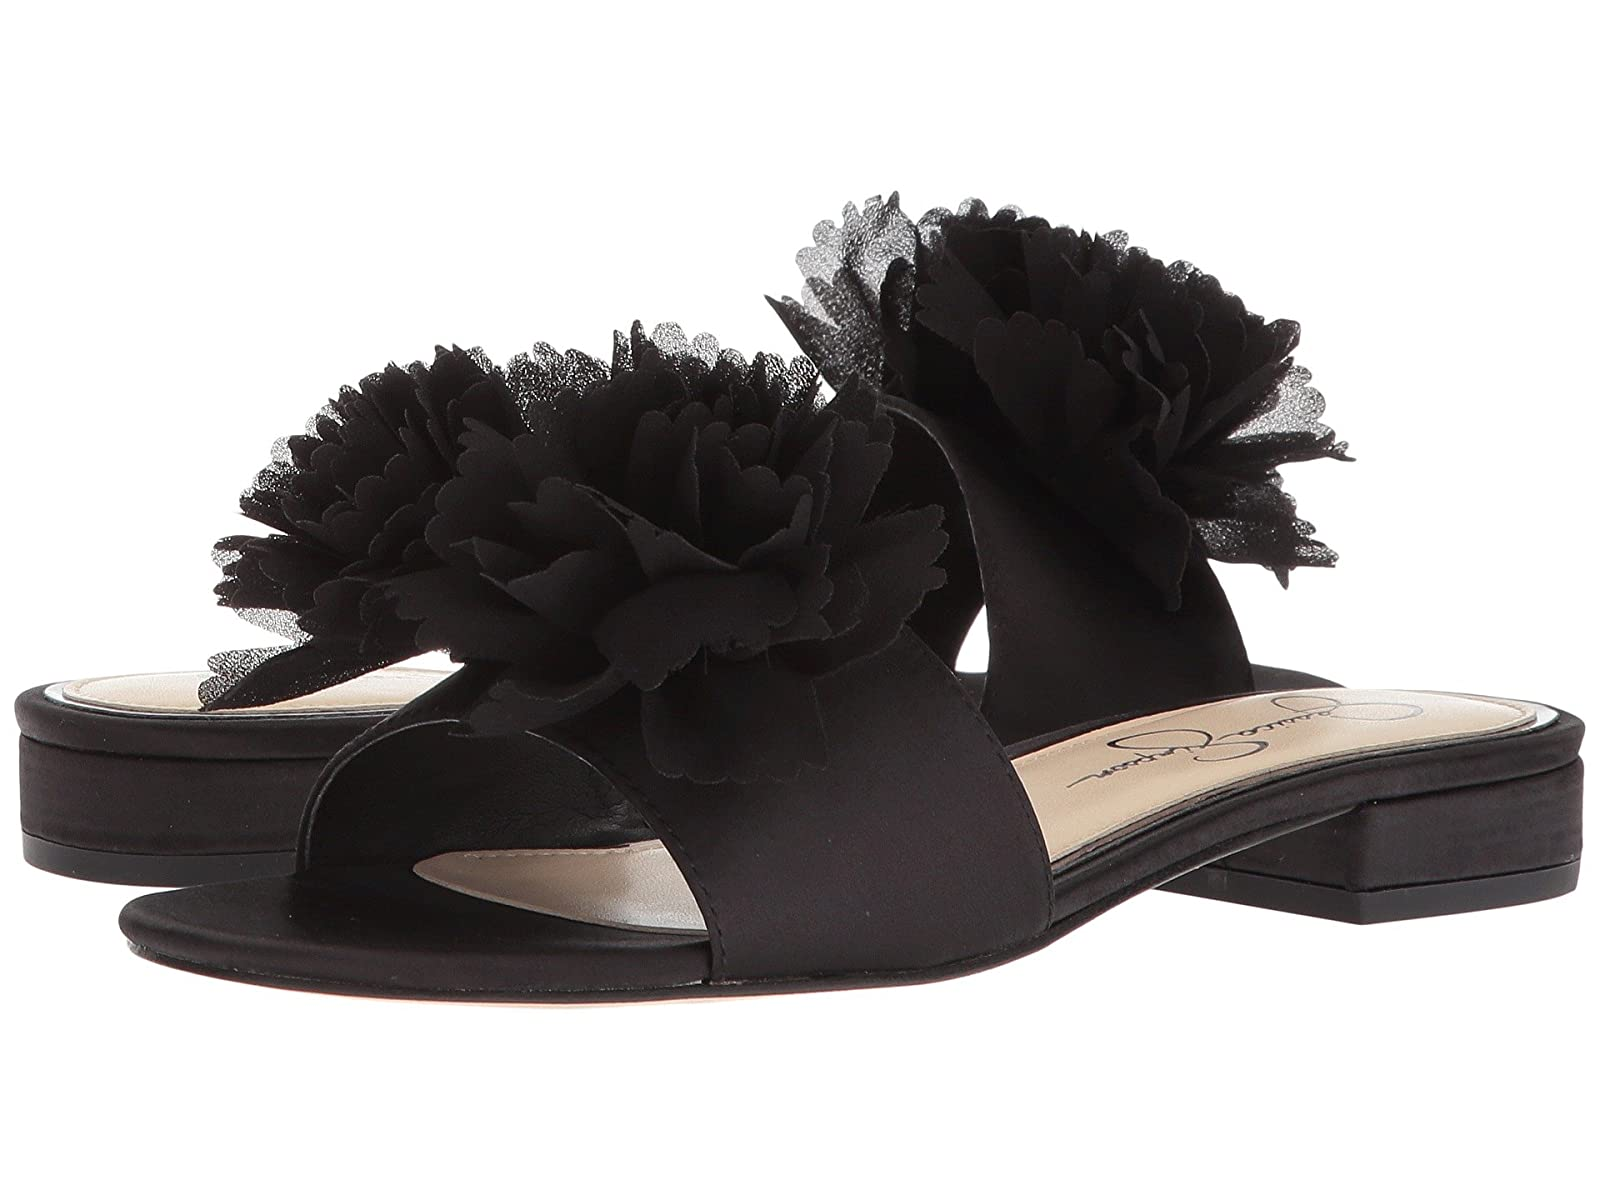 Jessica Simpson CaralinAtmospheric grades have affordable shoes